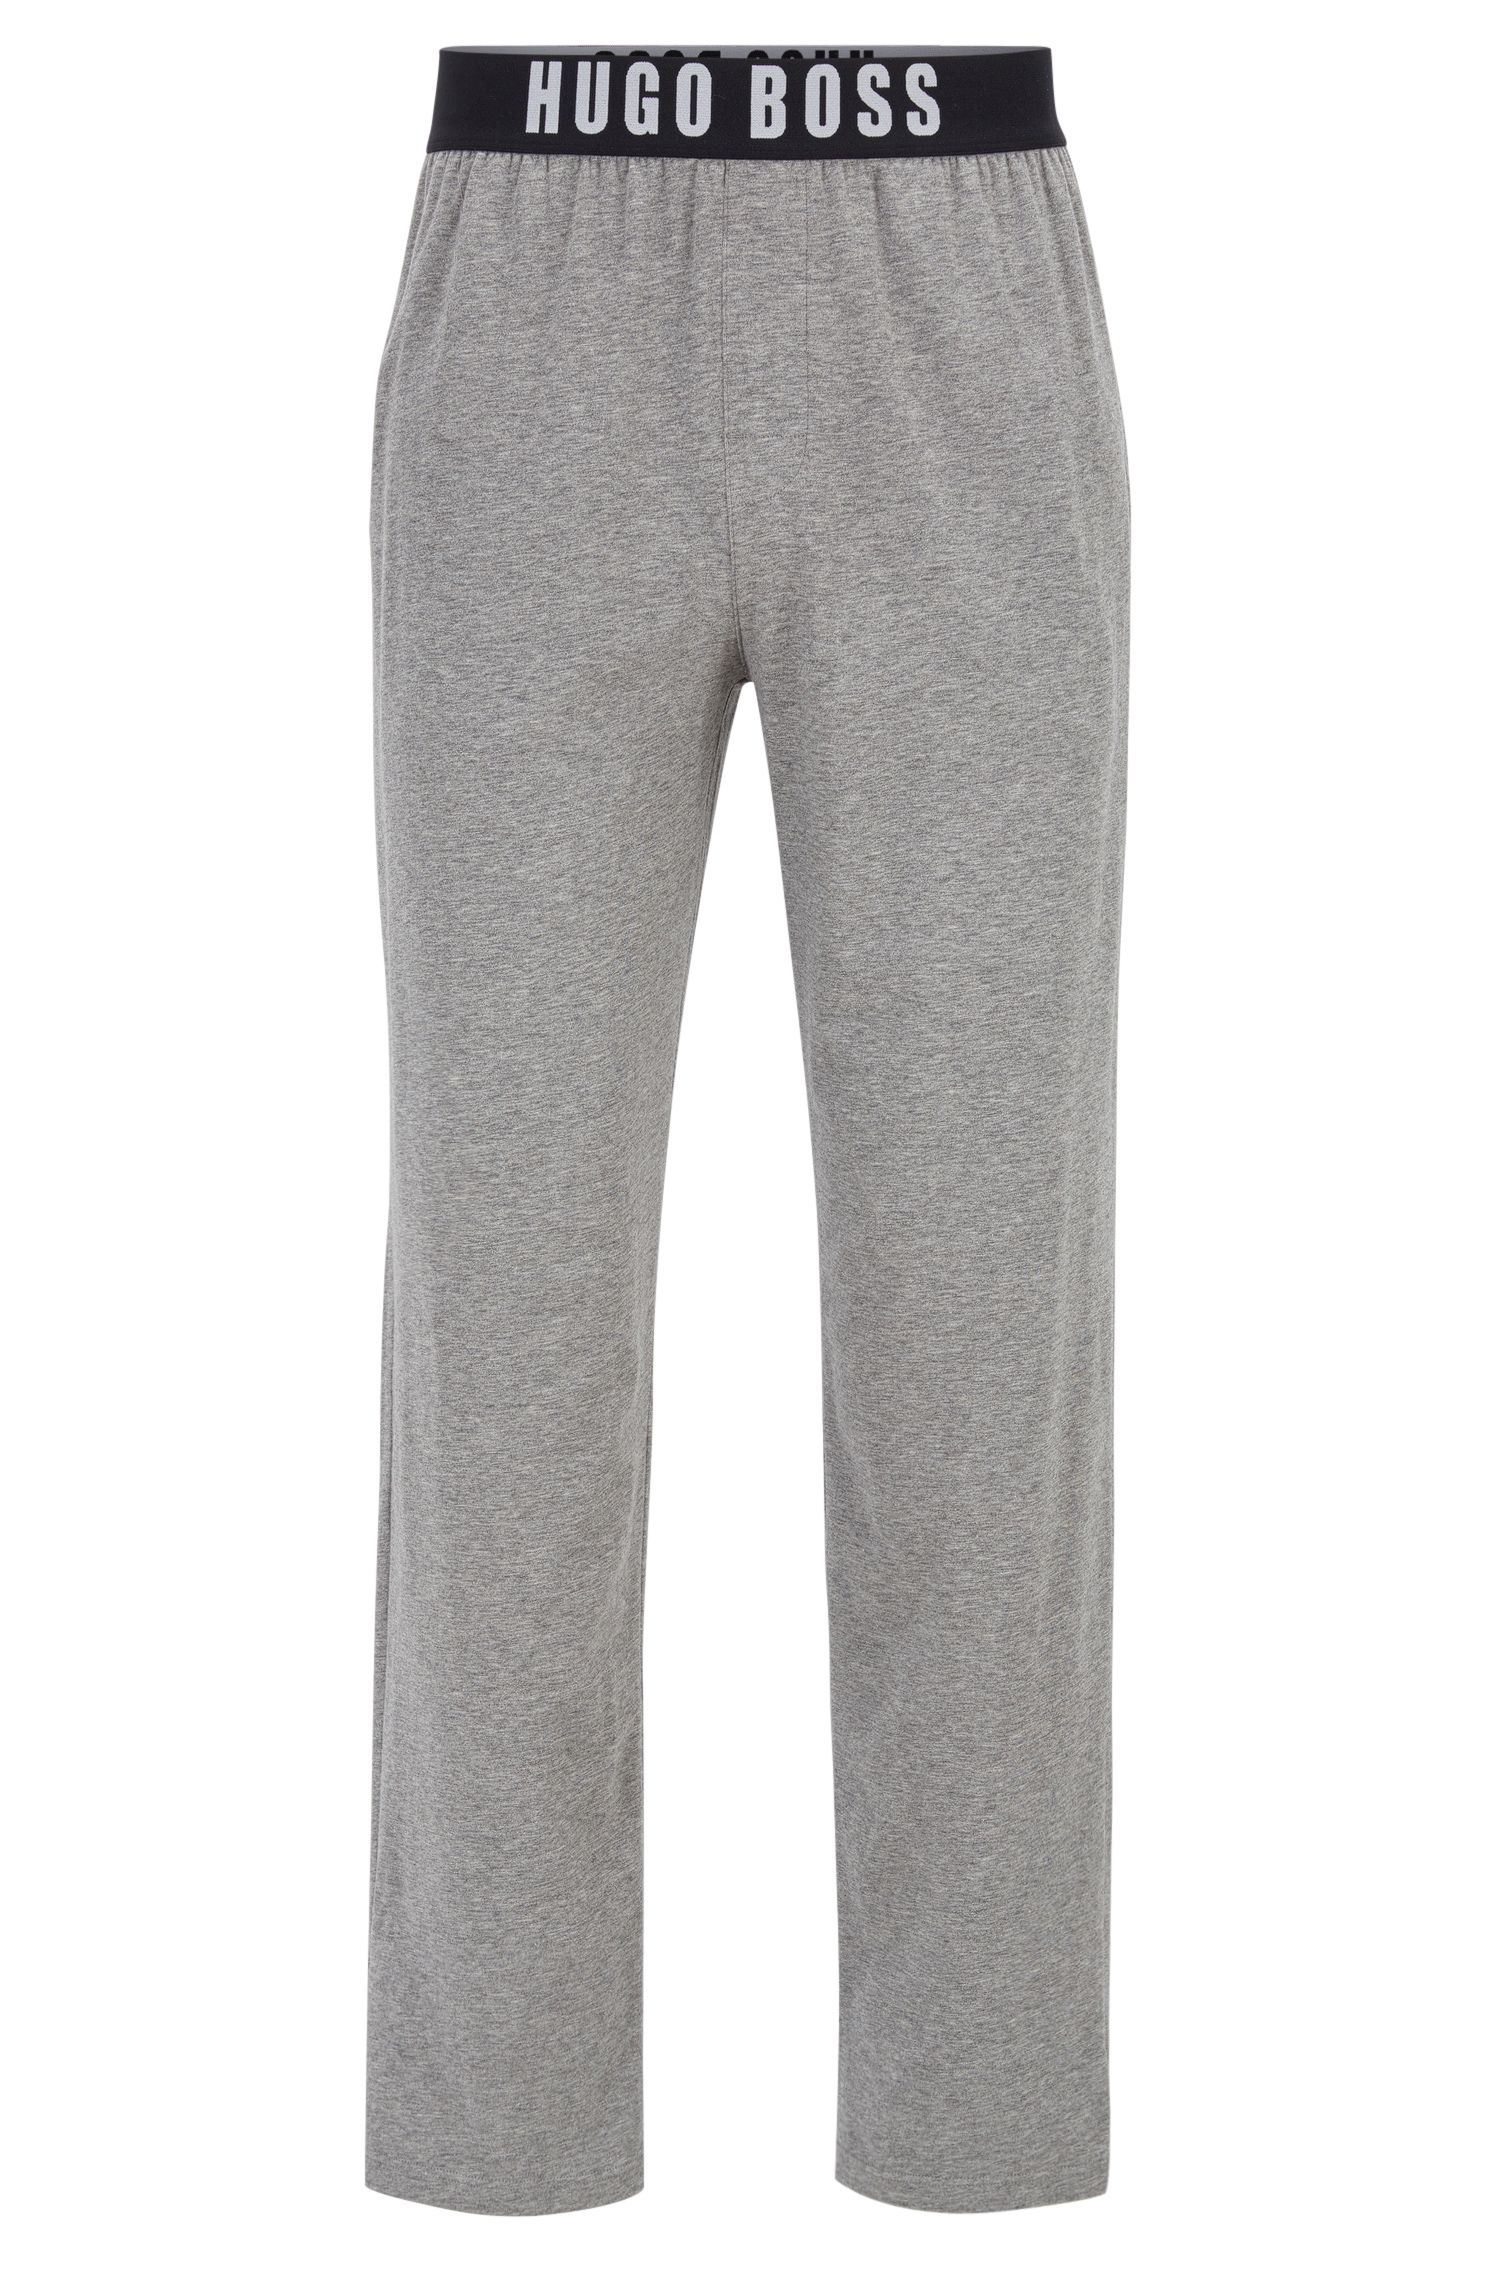 Pyjama trousers in stretch cotton jersey